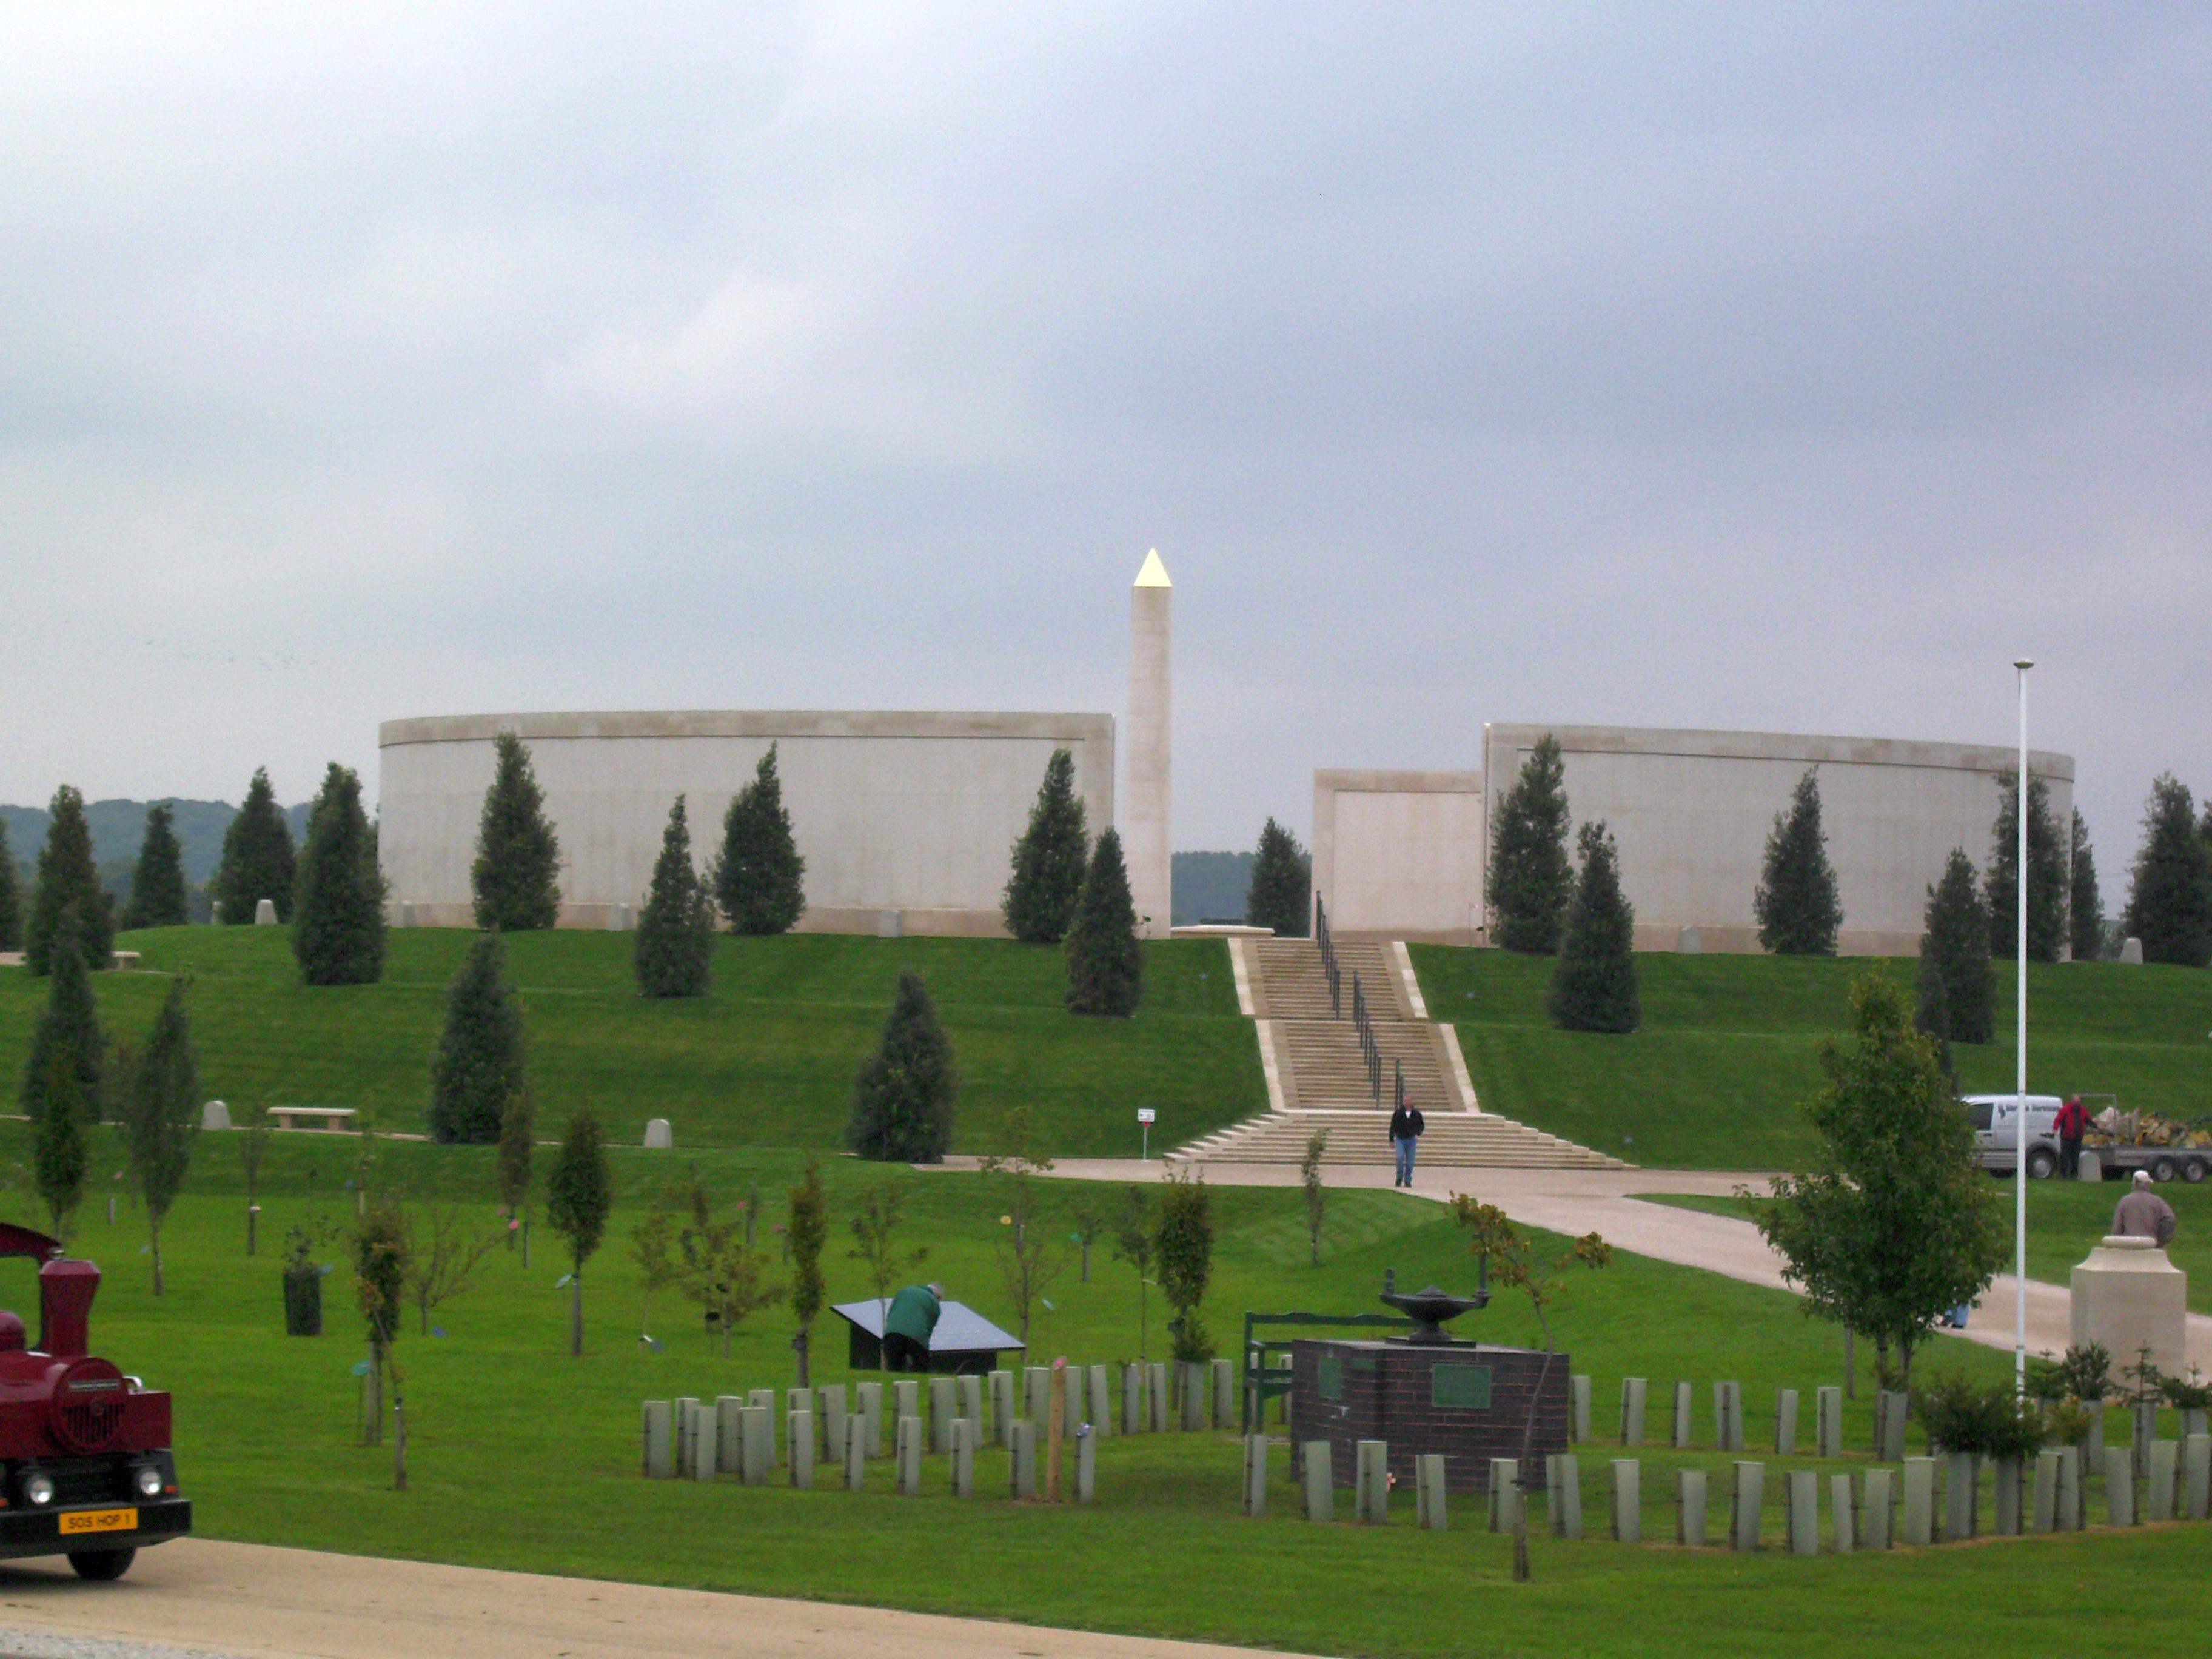 Photo of the National Memorial Arboretum